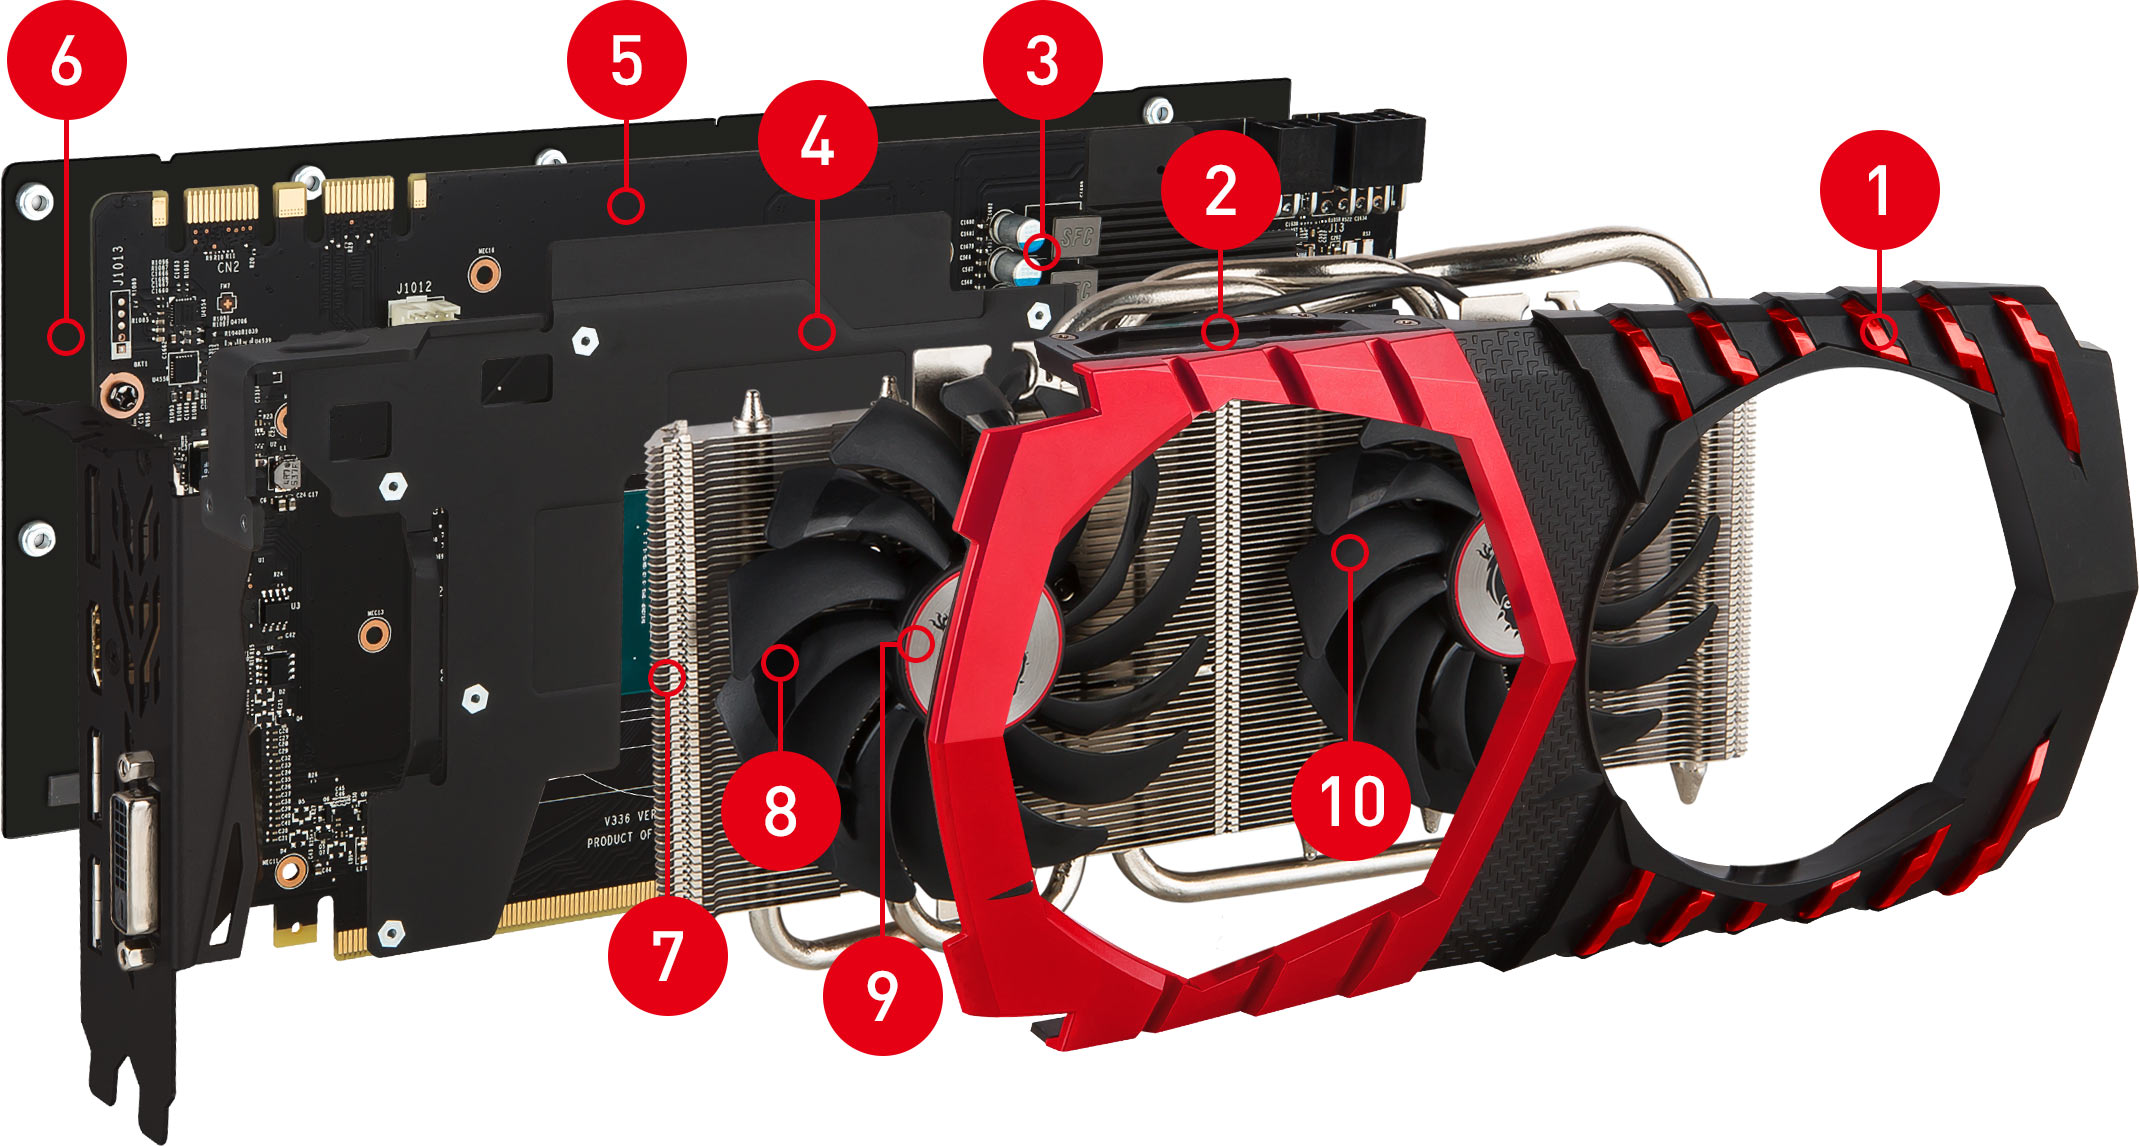 GTX 1080 GAMING X 8G exploded view